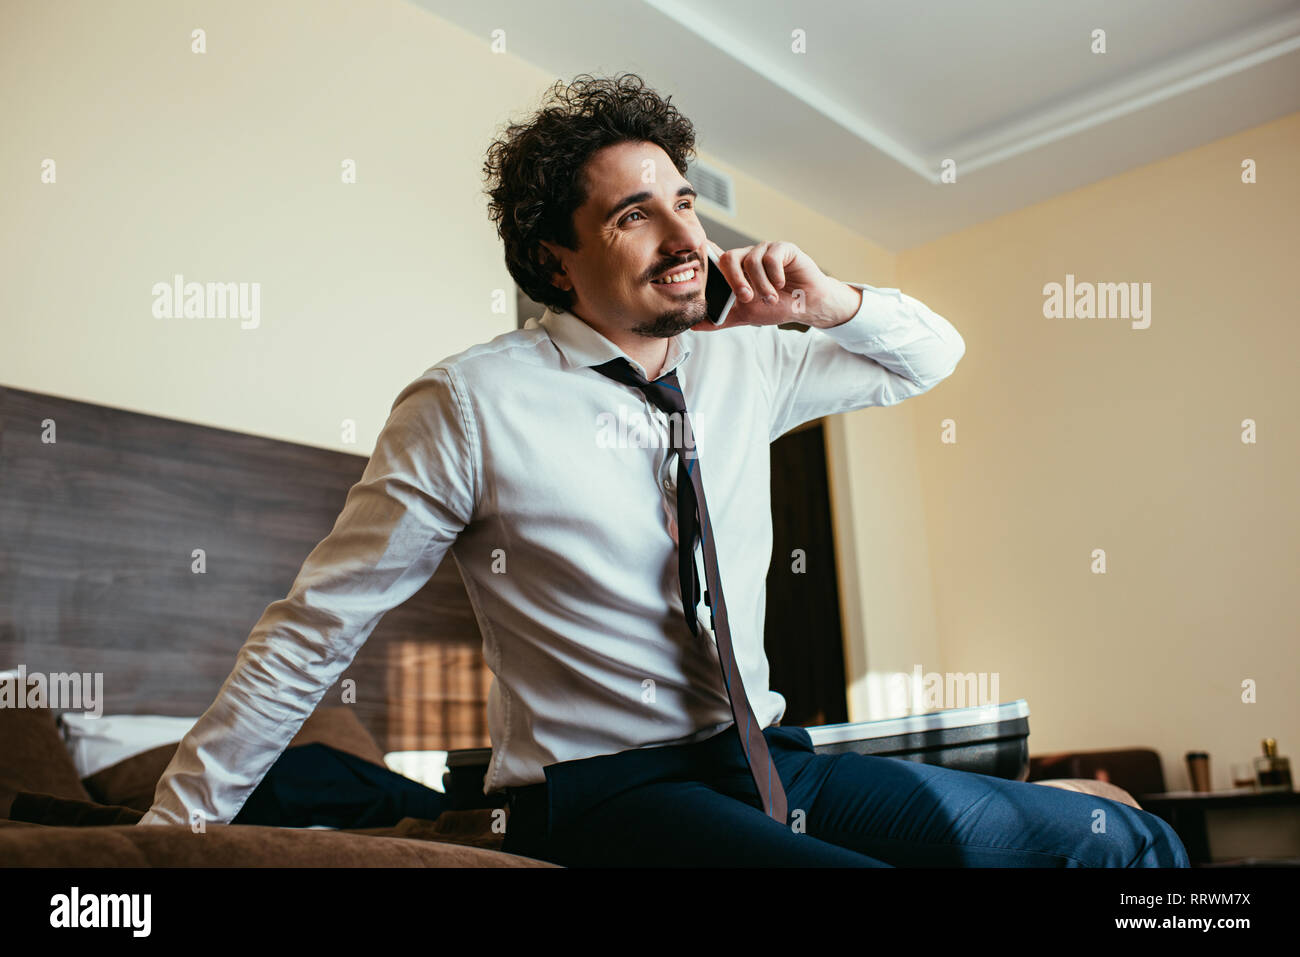 cheerful businessman in formal wear talking on smartphone in hotel room - Stock Image